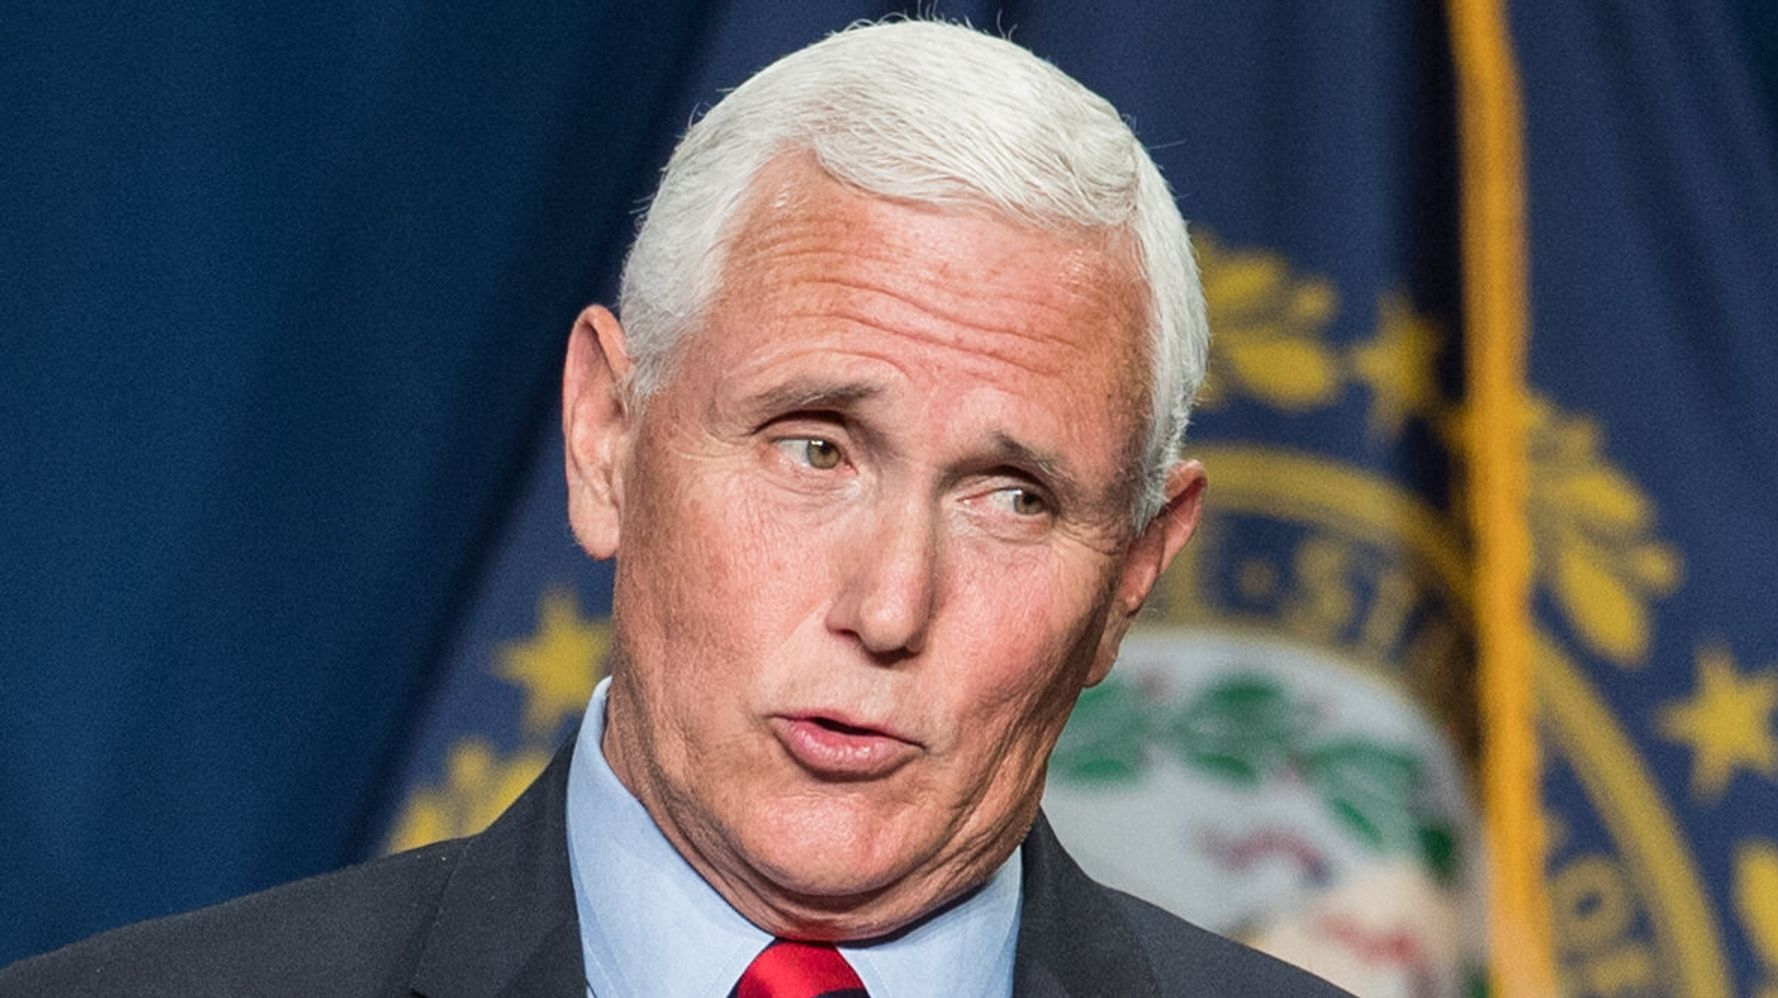 Mike Pence's 'Cancel Culture' Rallying Cry Is Too Much For Folks On Twitter